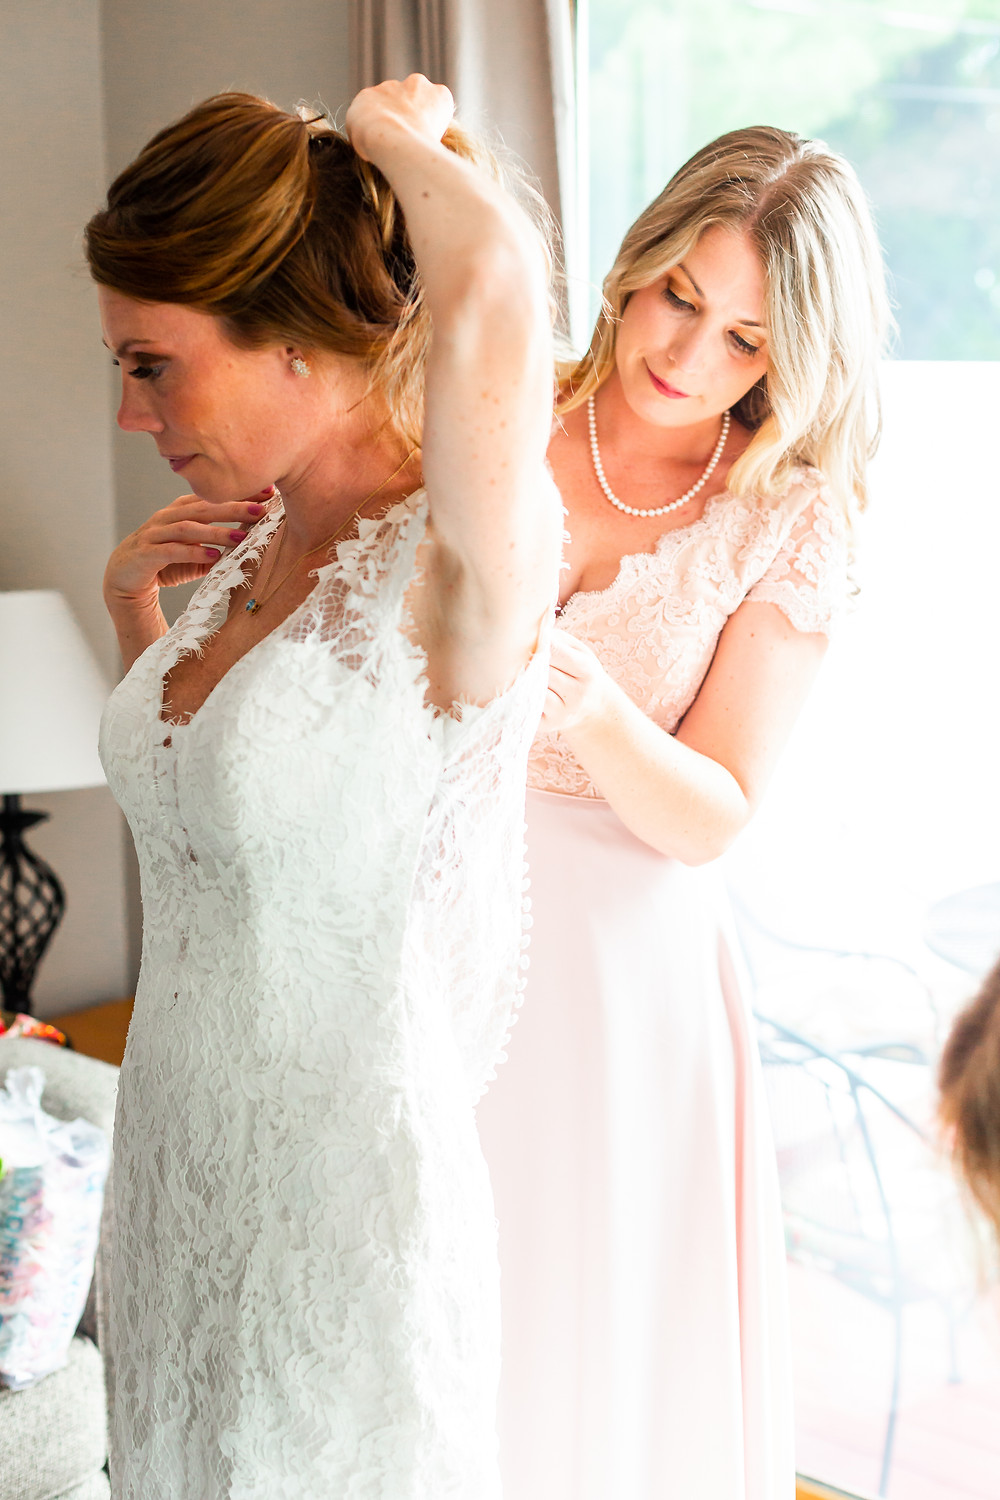 Bride getting ready at her wedding in laconia New Hampshire.